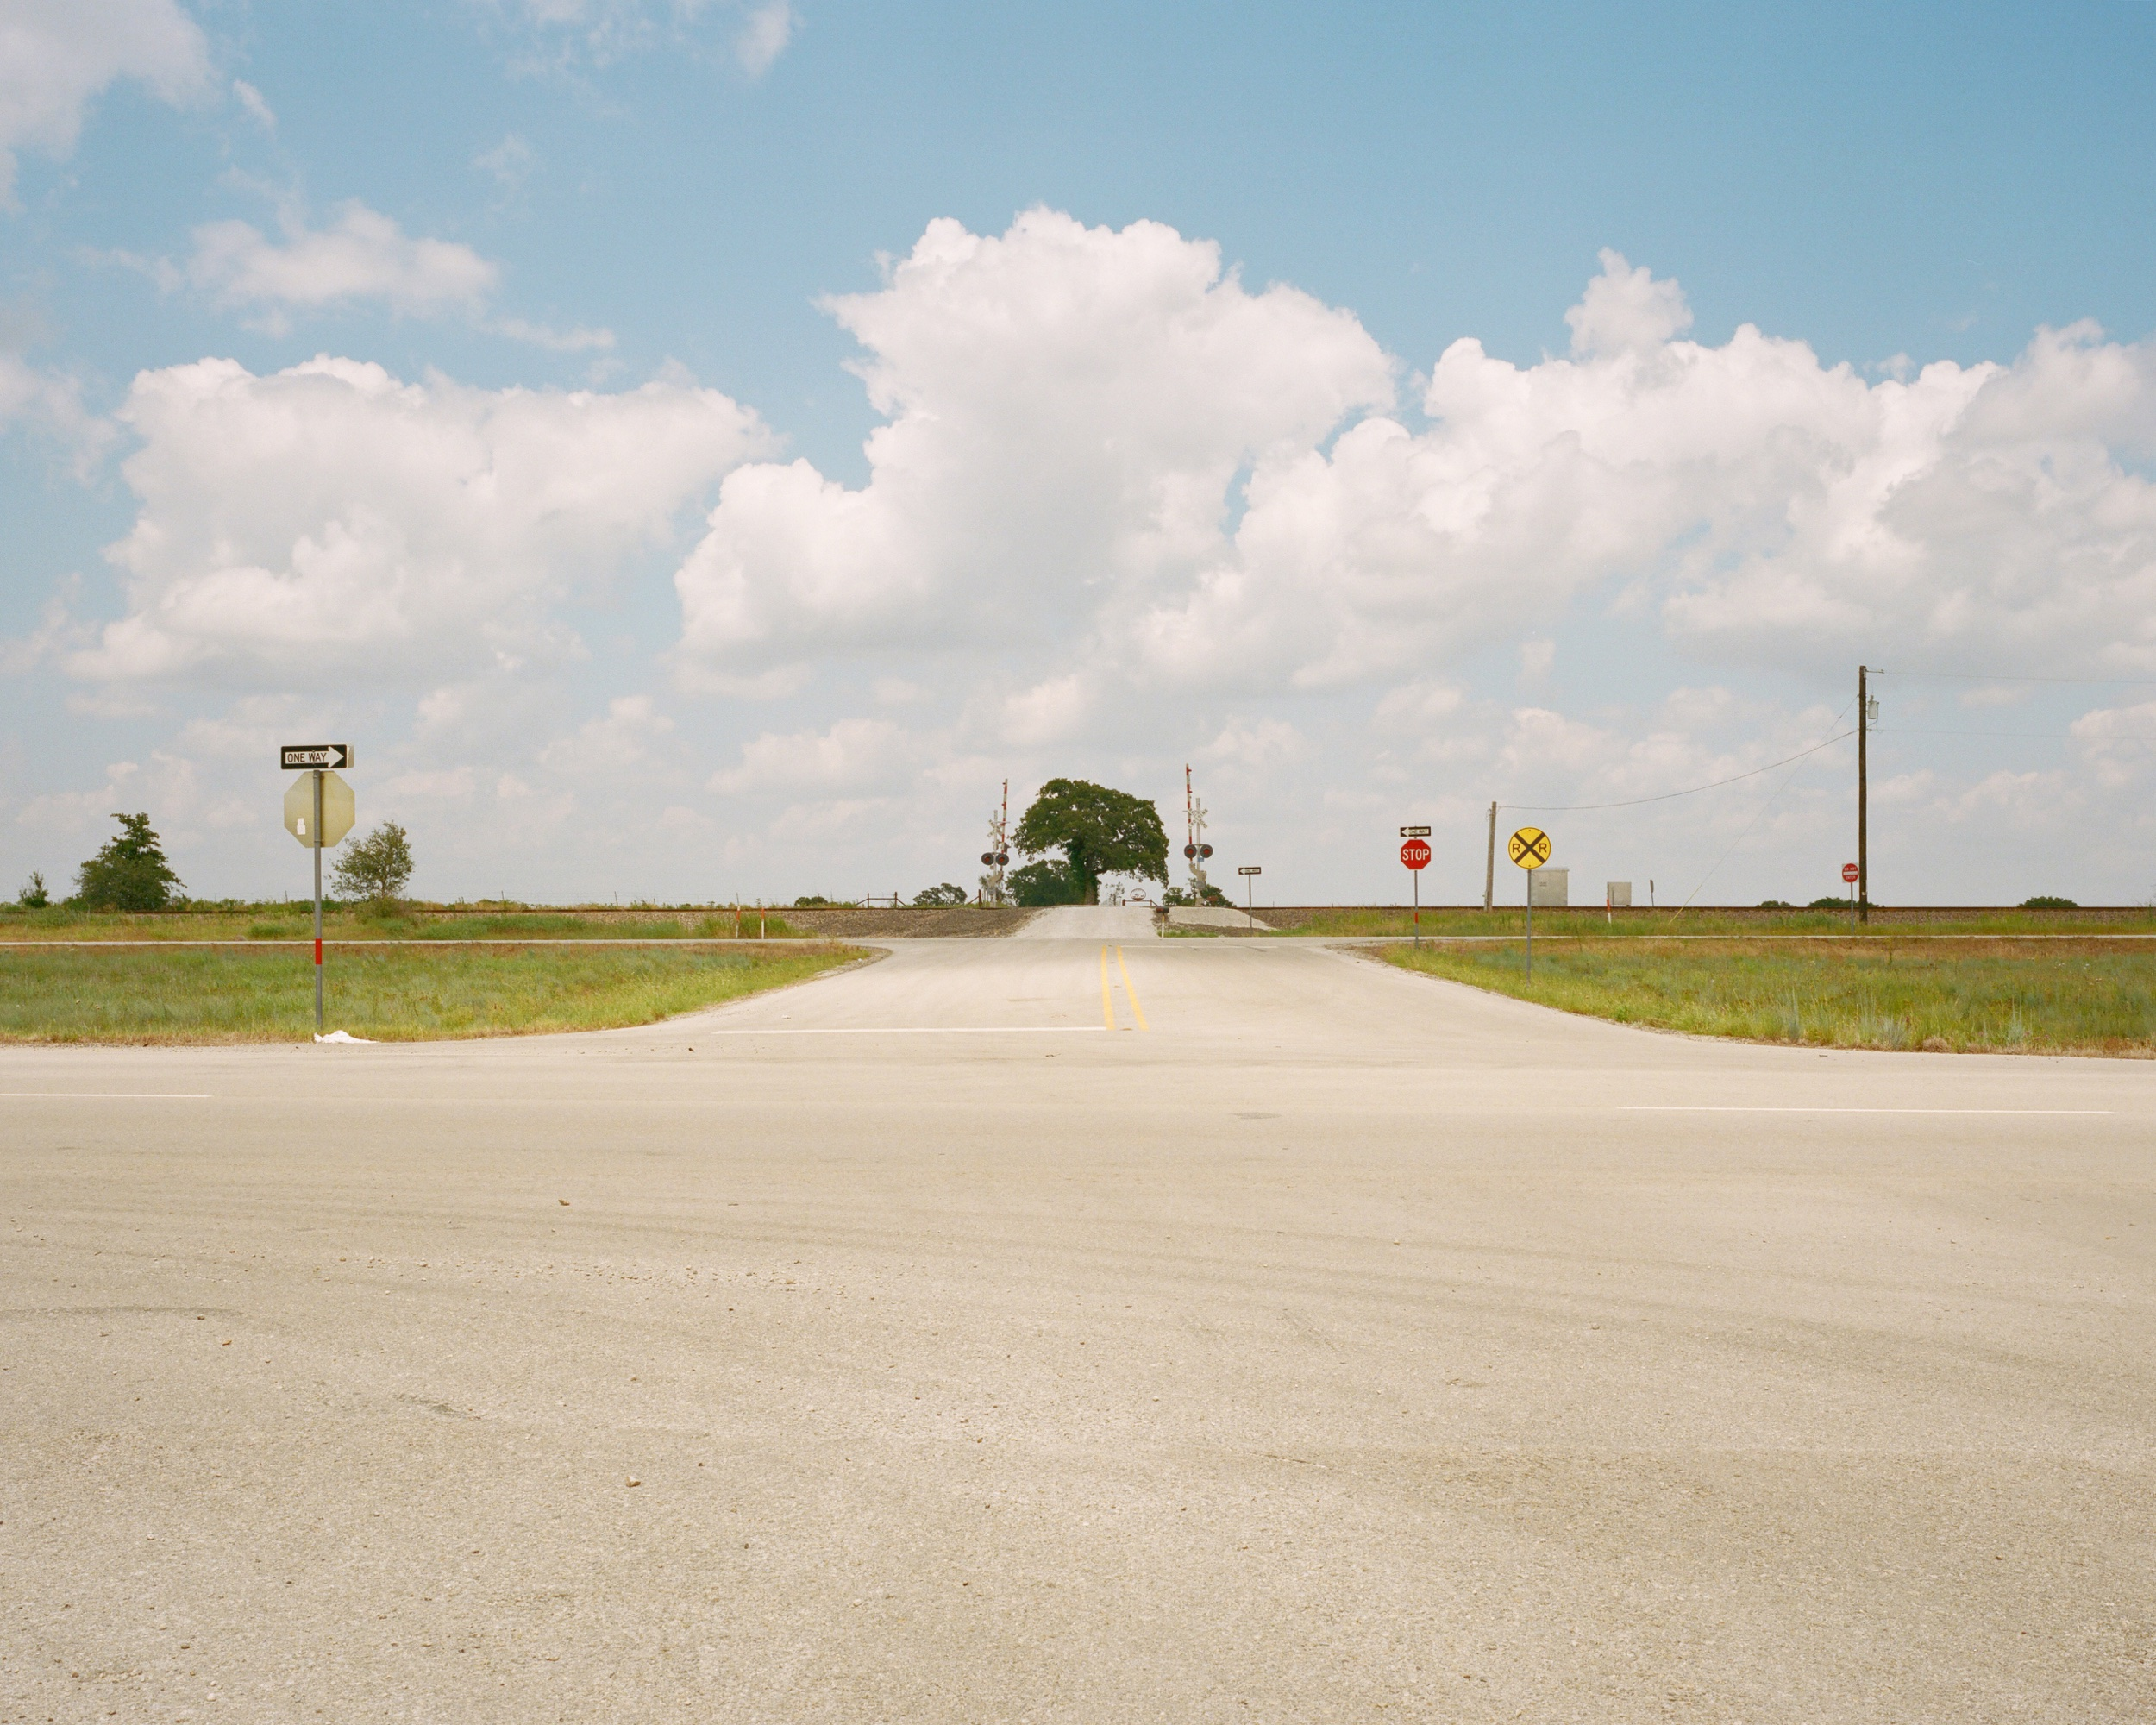 Highway 287, Texas, July 2019 - 120 Portra (6x7)